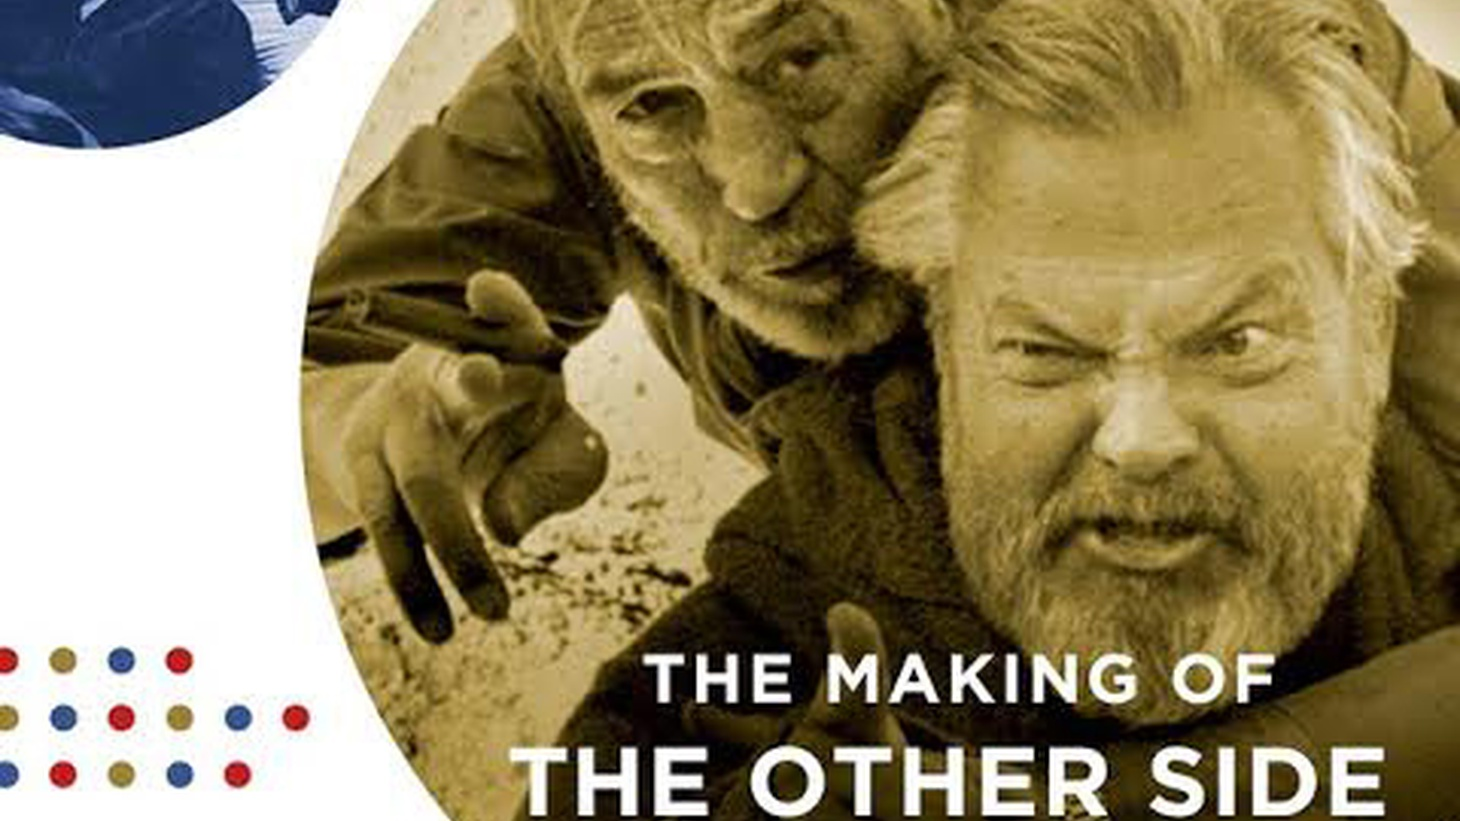 Journalist Josh Karp tells us why the Orson Welles movie The Other Side of the Wind has been so troubled for decades. And KCRW's Saul Gonzalez checks in on California's latest attempt to keep movie-making in Hollywood.